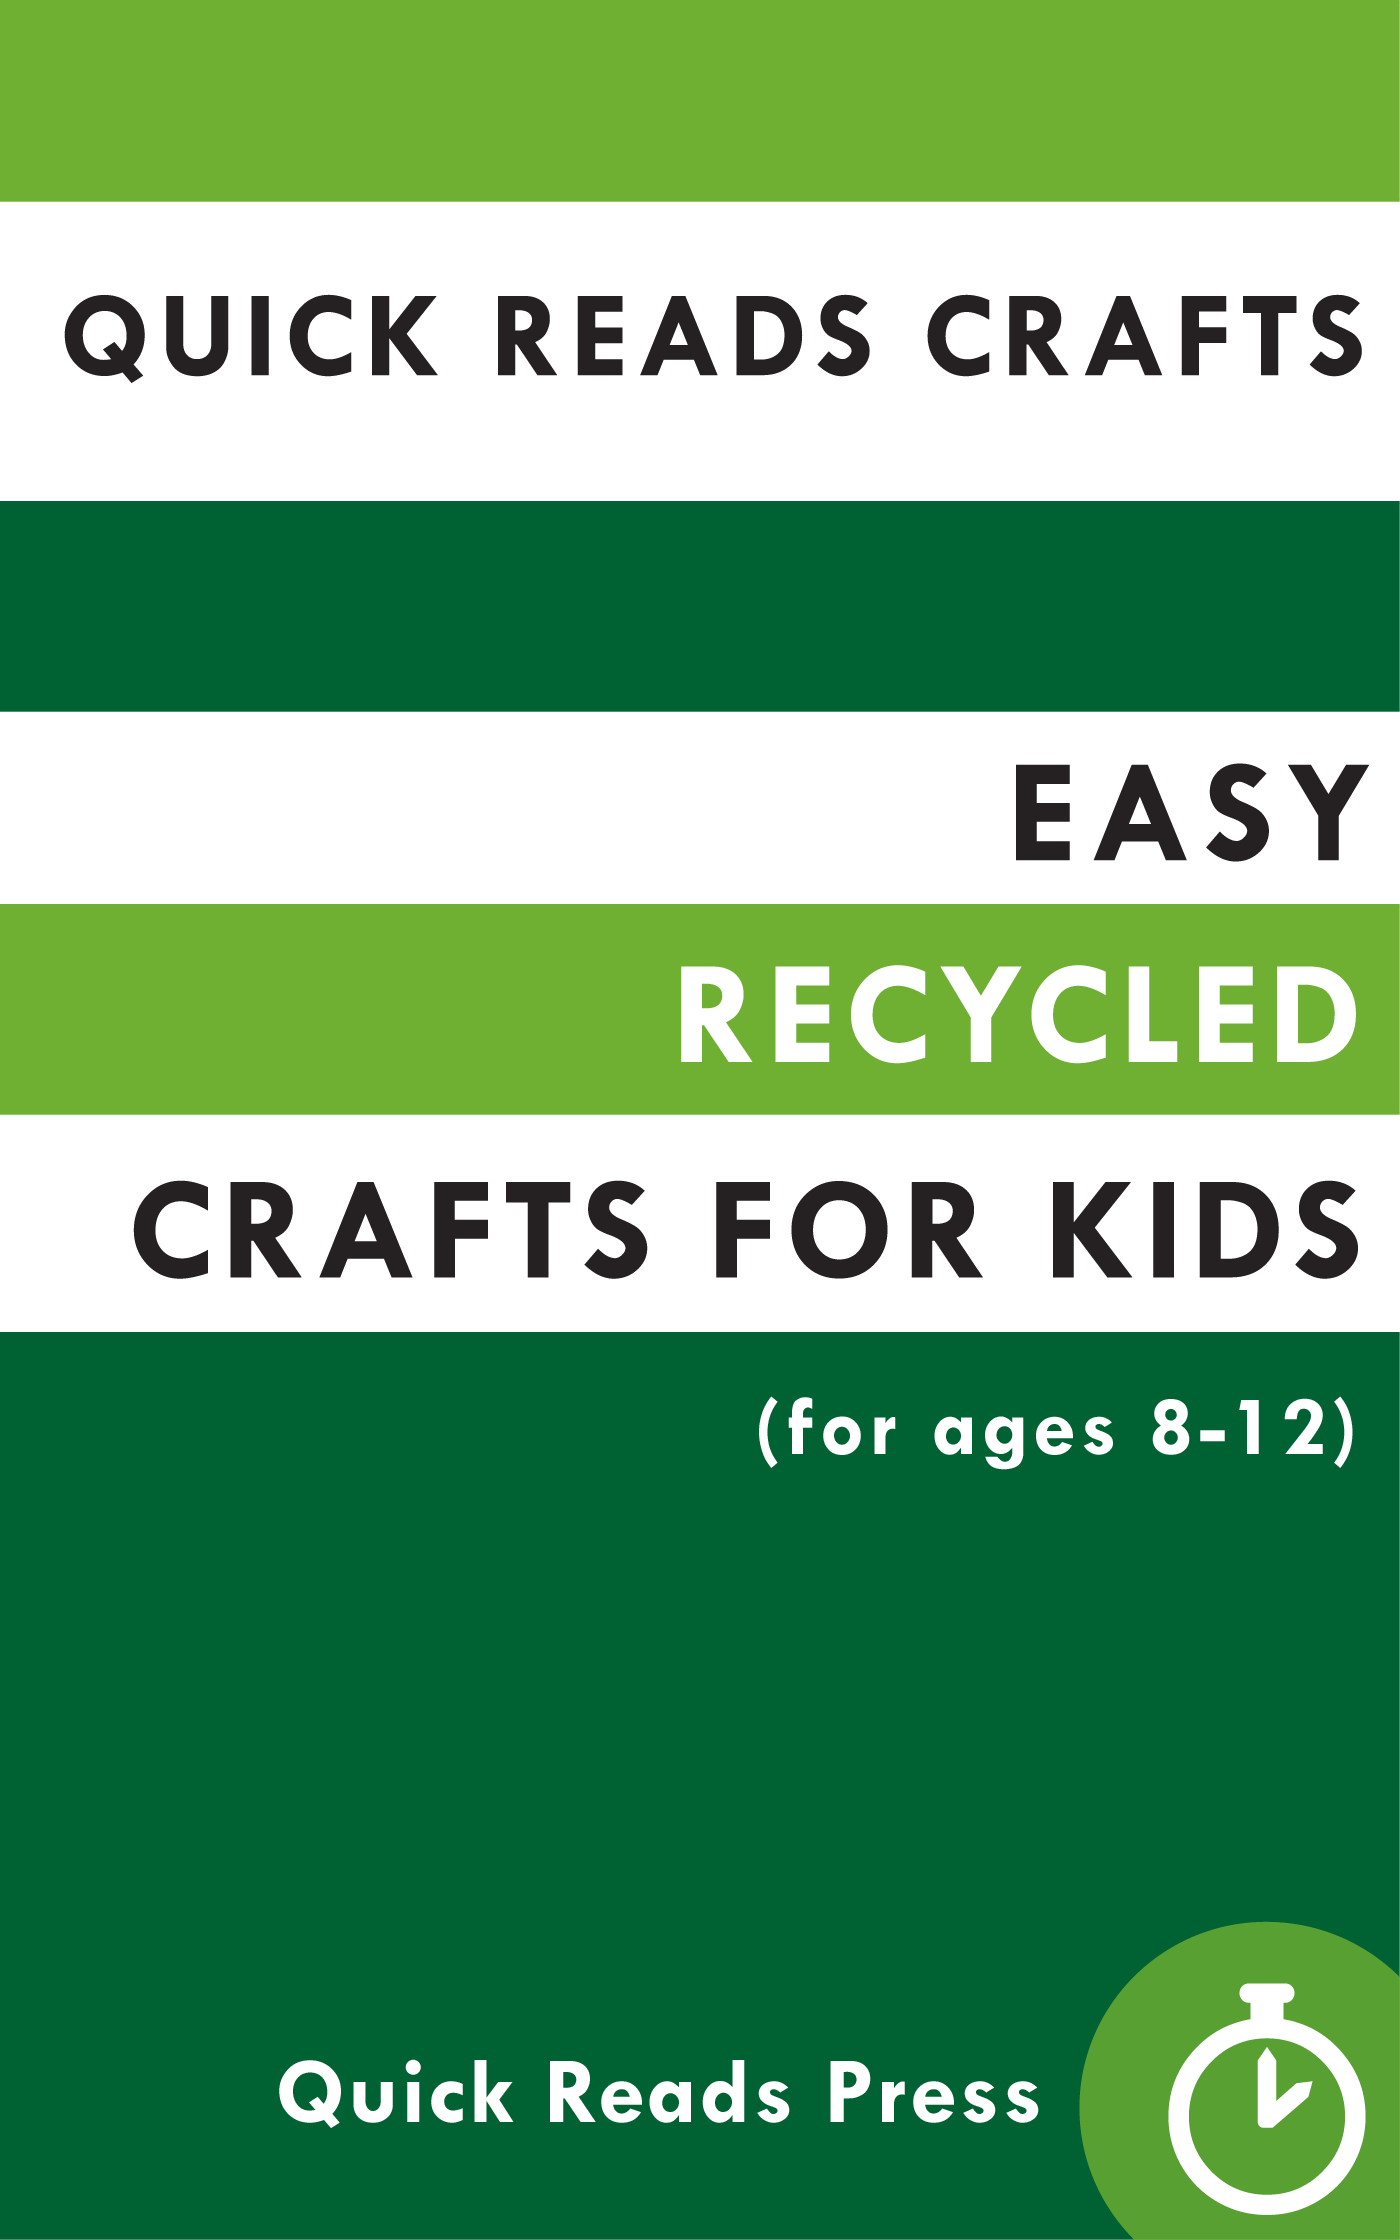 Quick Reads Crafts Easy Recycled For Kids Ages 8 12